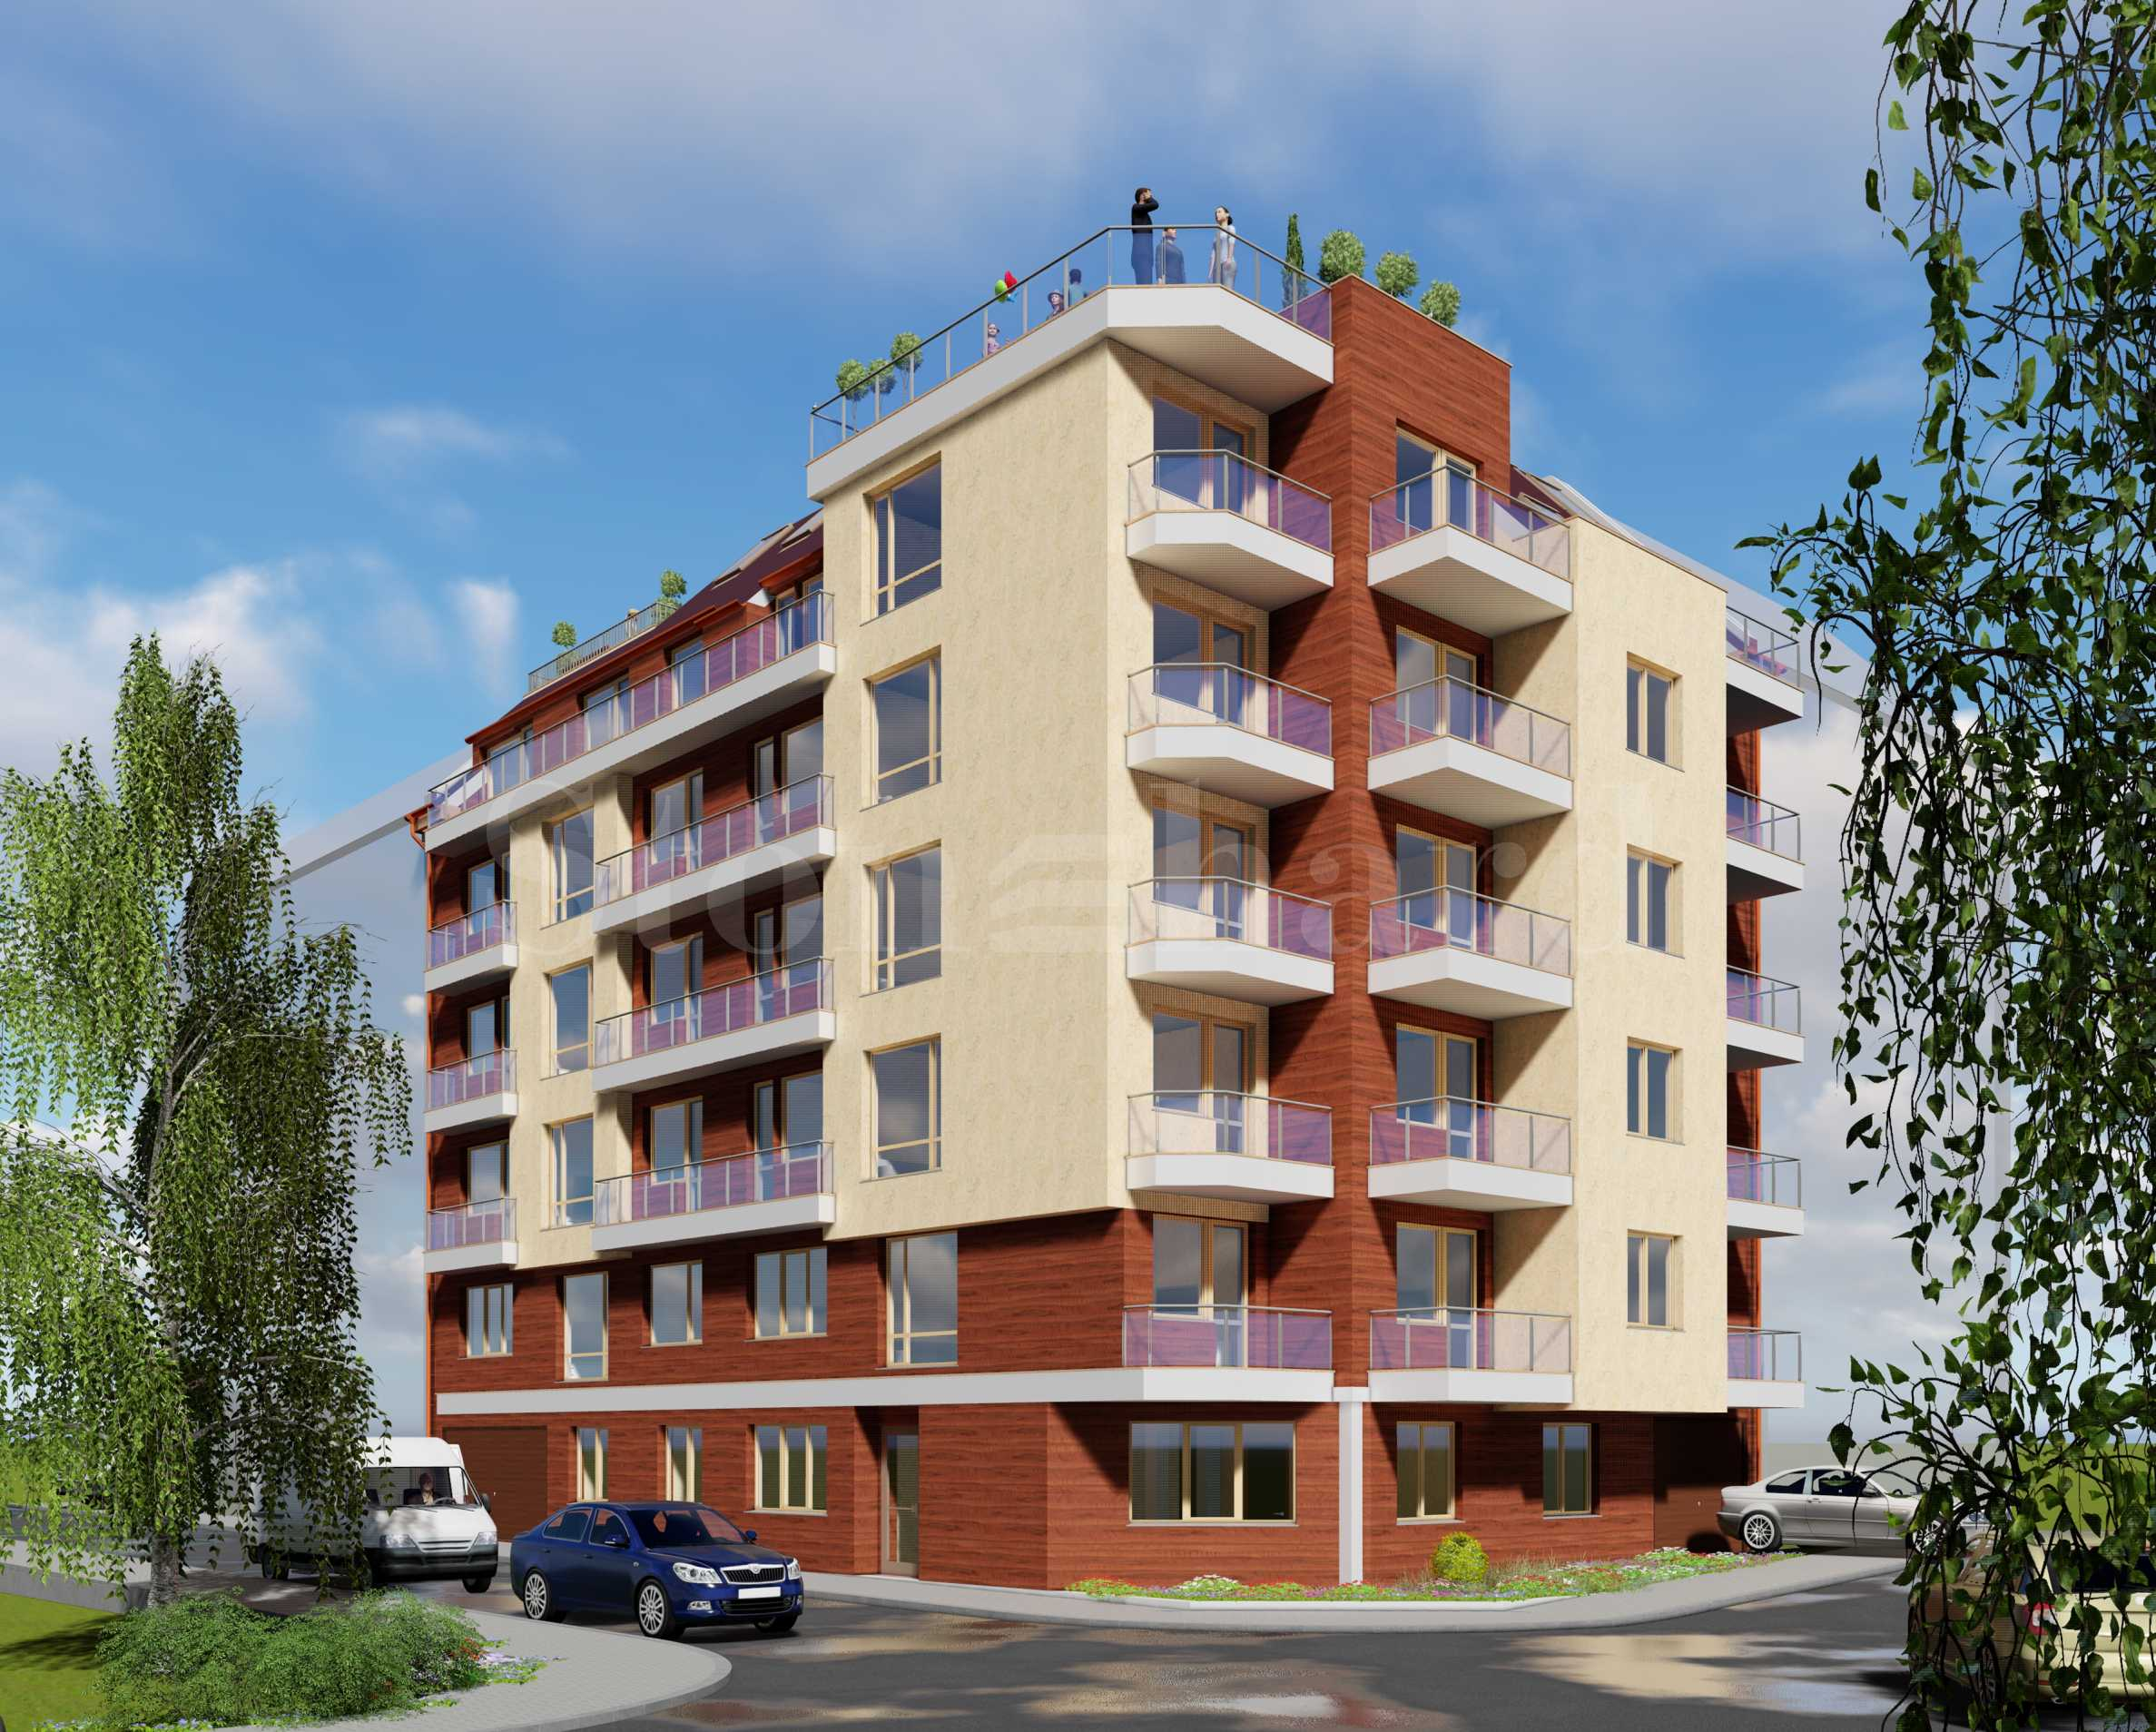 New residential building in Vazrazhdane 1 district in the city of Varna(Bulgaria)1 - Stonehard